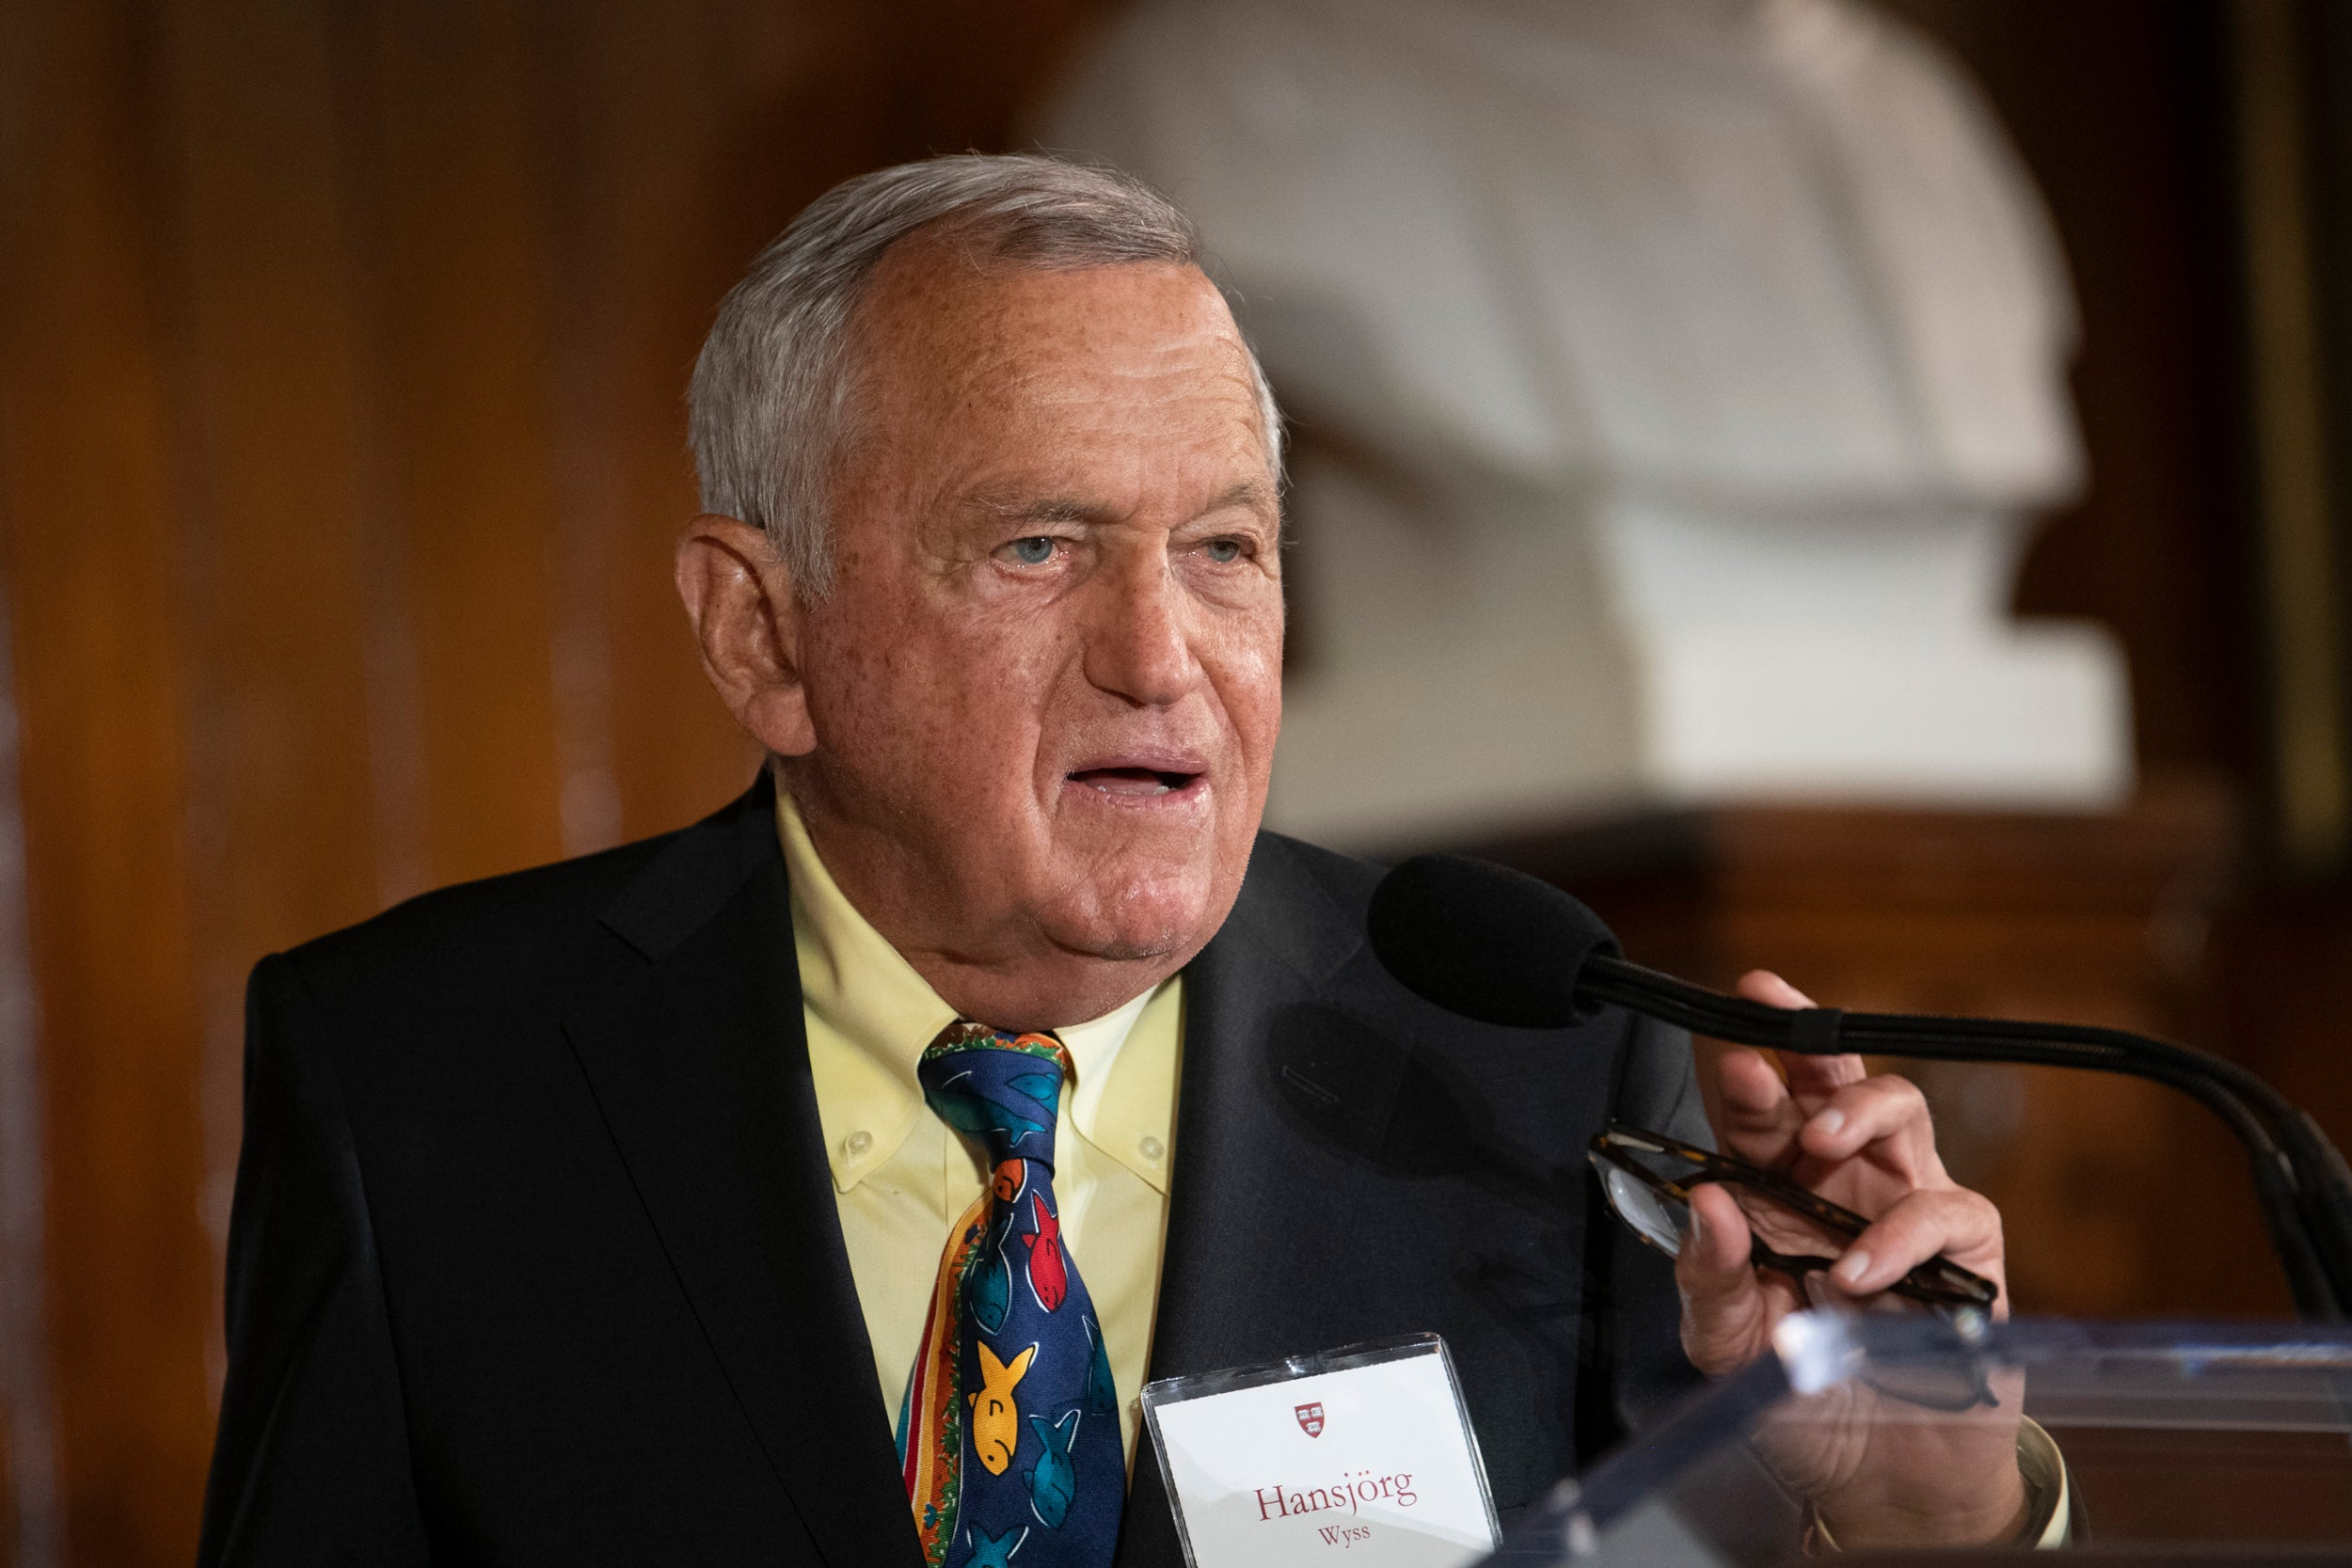 Hansjörg Wyss was honored at a campus event celebrating his support of the Wyss Institute for Biologically Inspired Engineering at Harvard, including his most recent gift of $131 million.